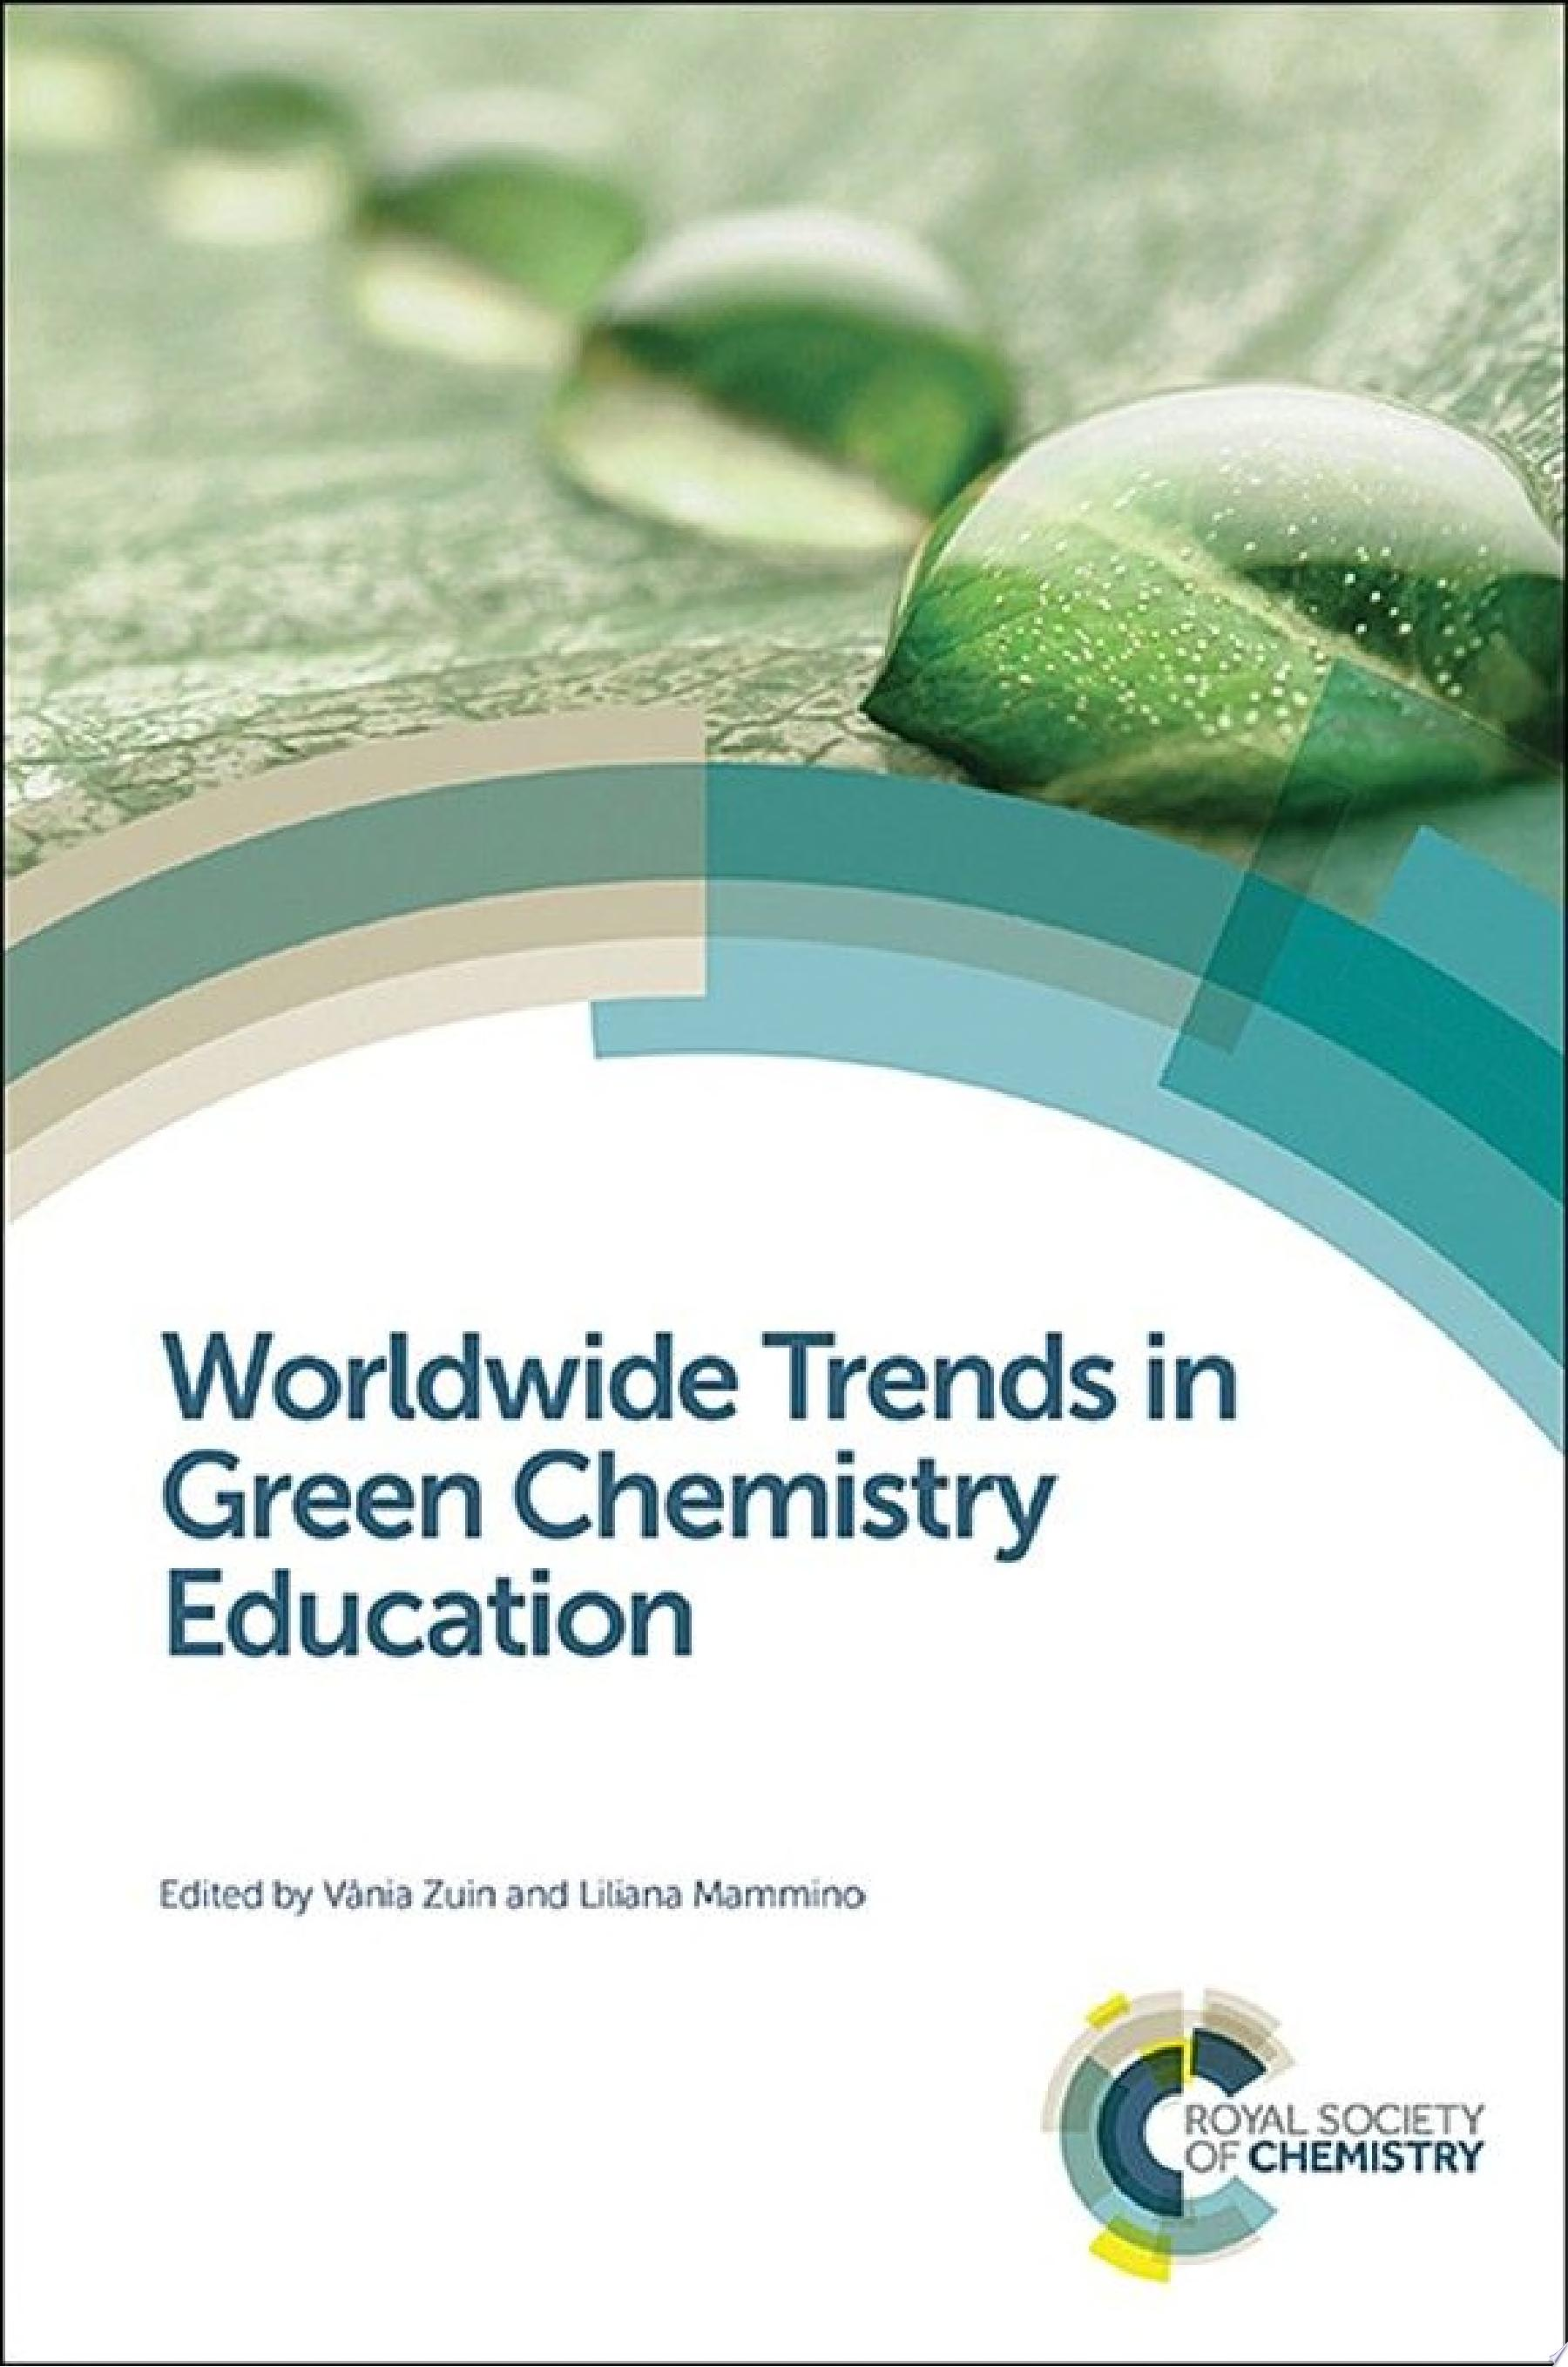 Worldwide Trends in Green Chemistry Education